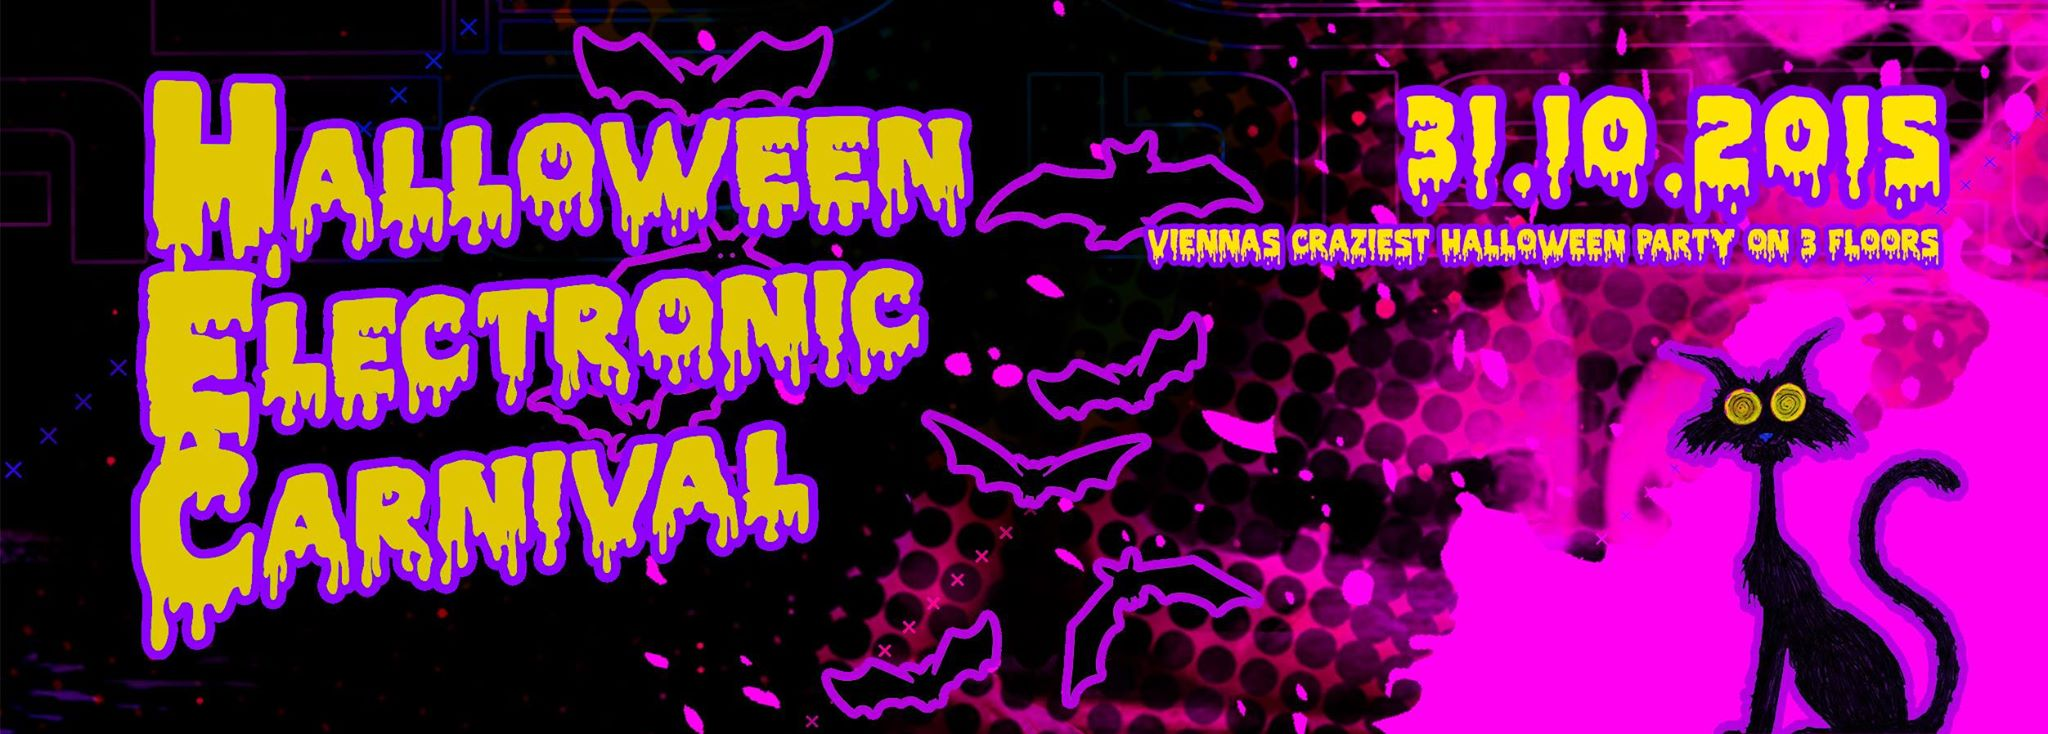 Halloween Electronic Carnival 2015